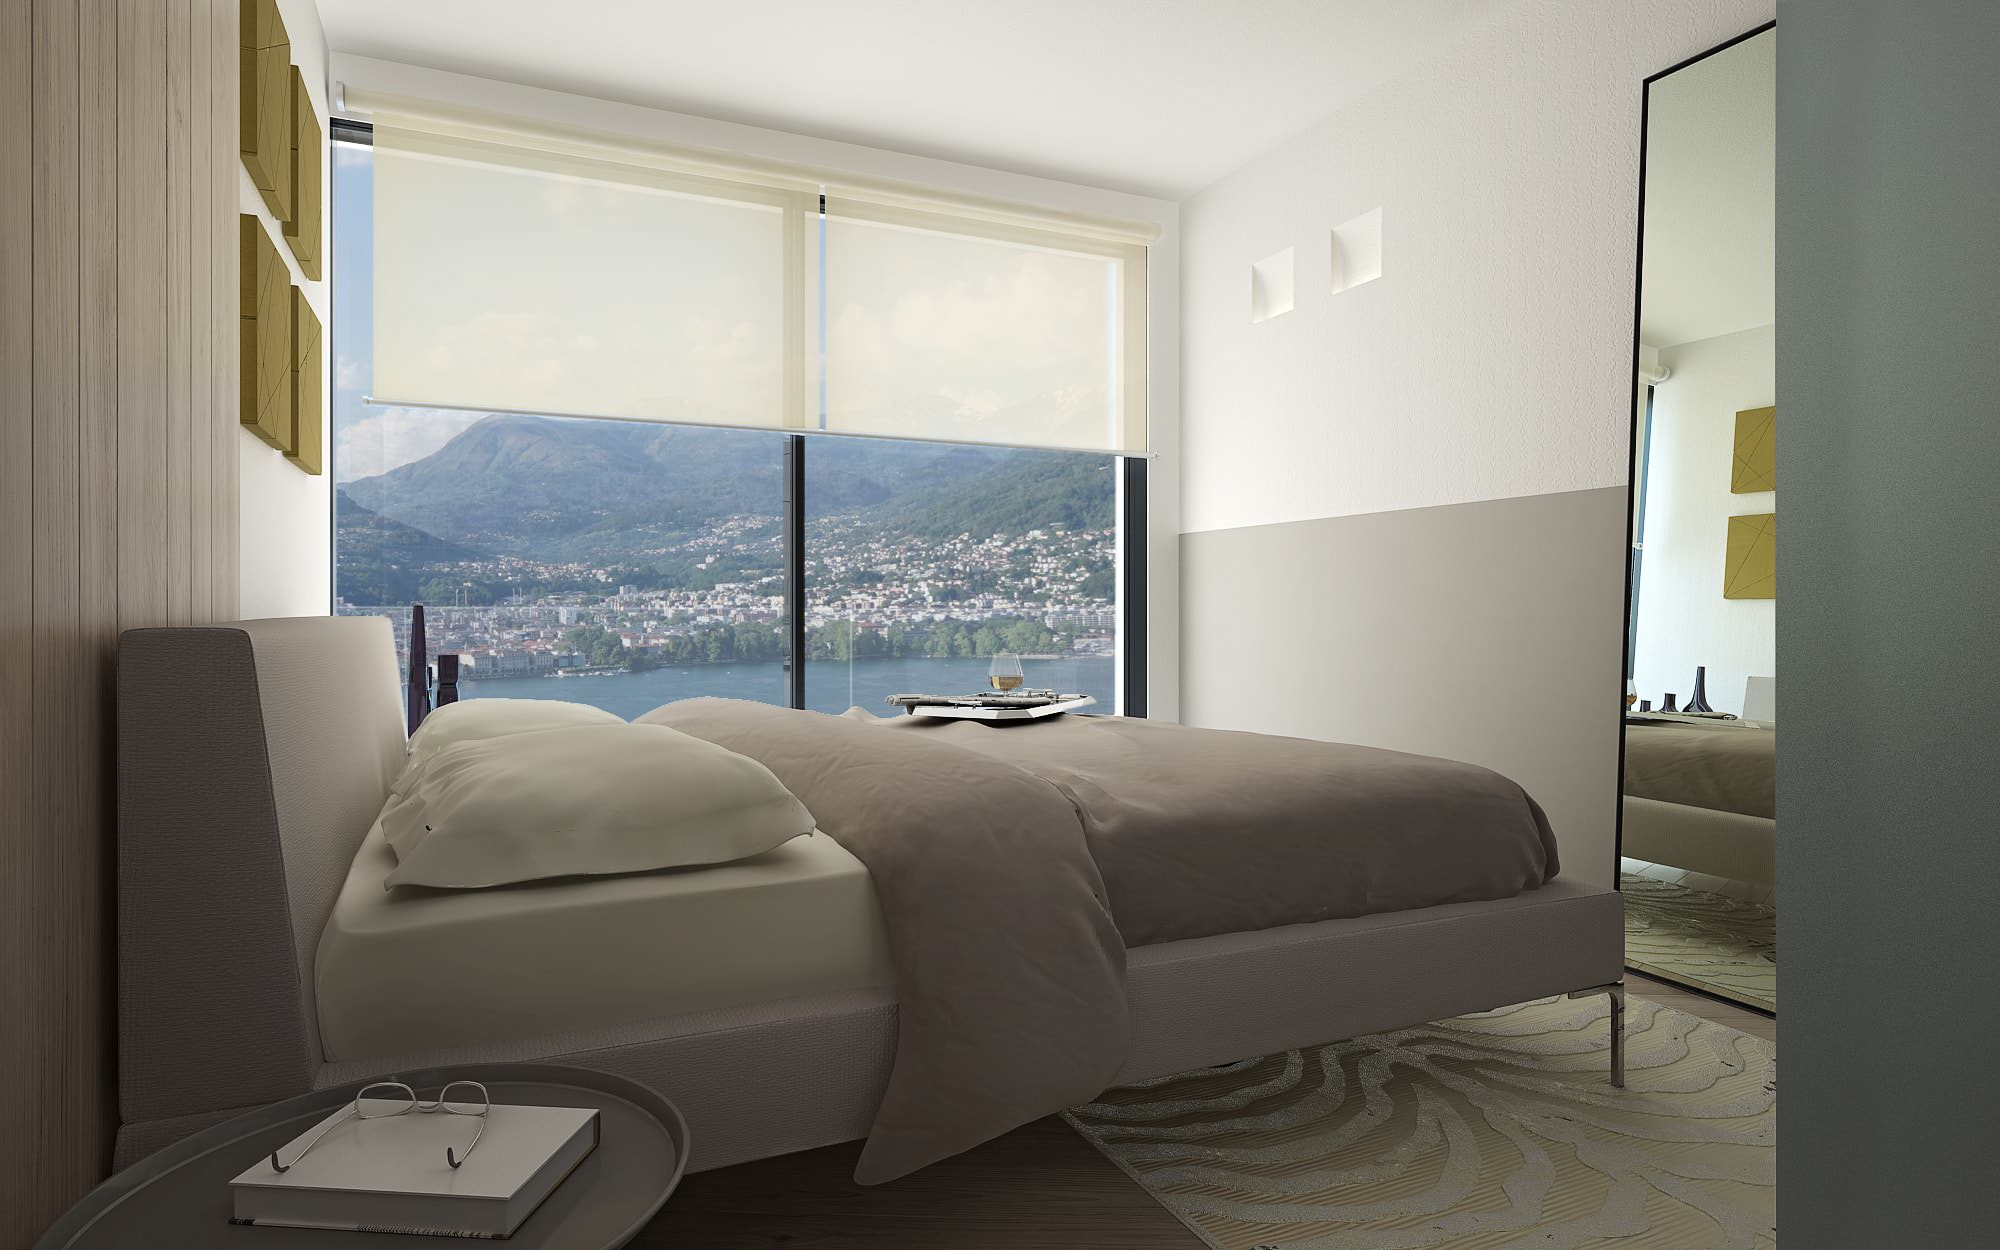 Vista lago Lugano camera letto attico design